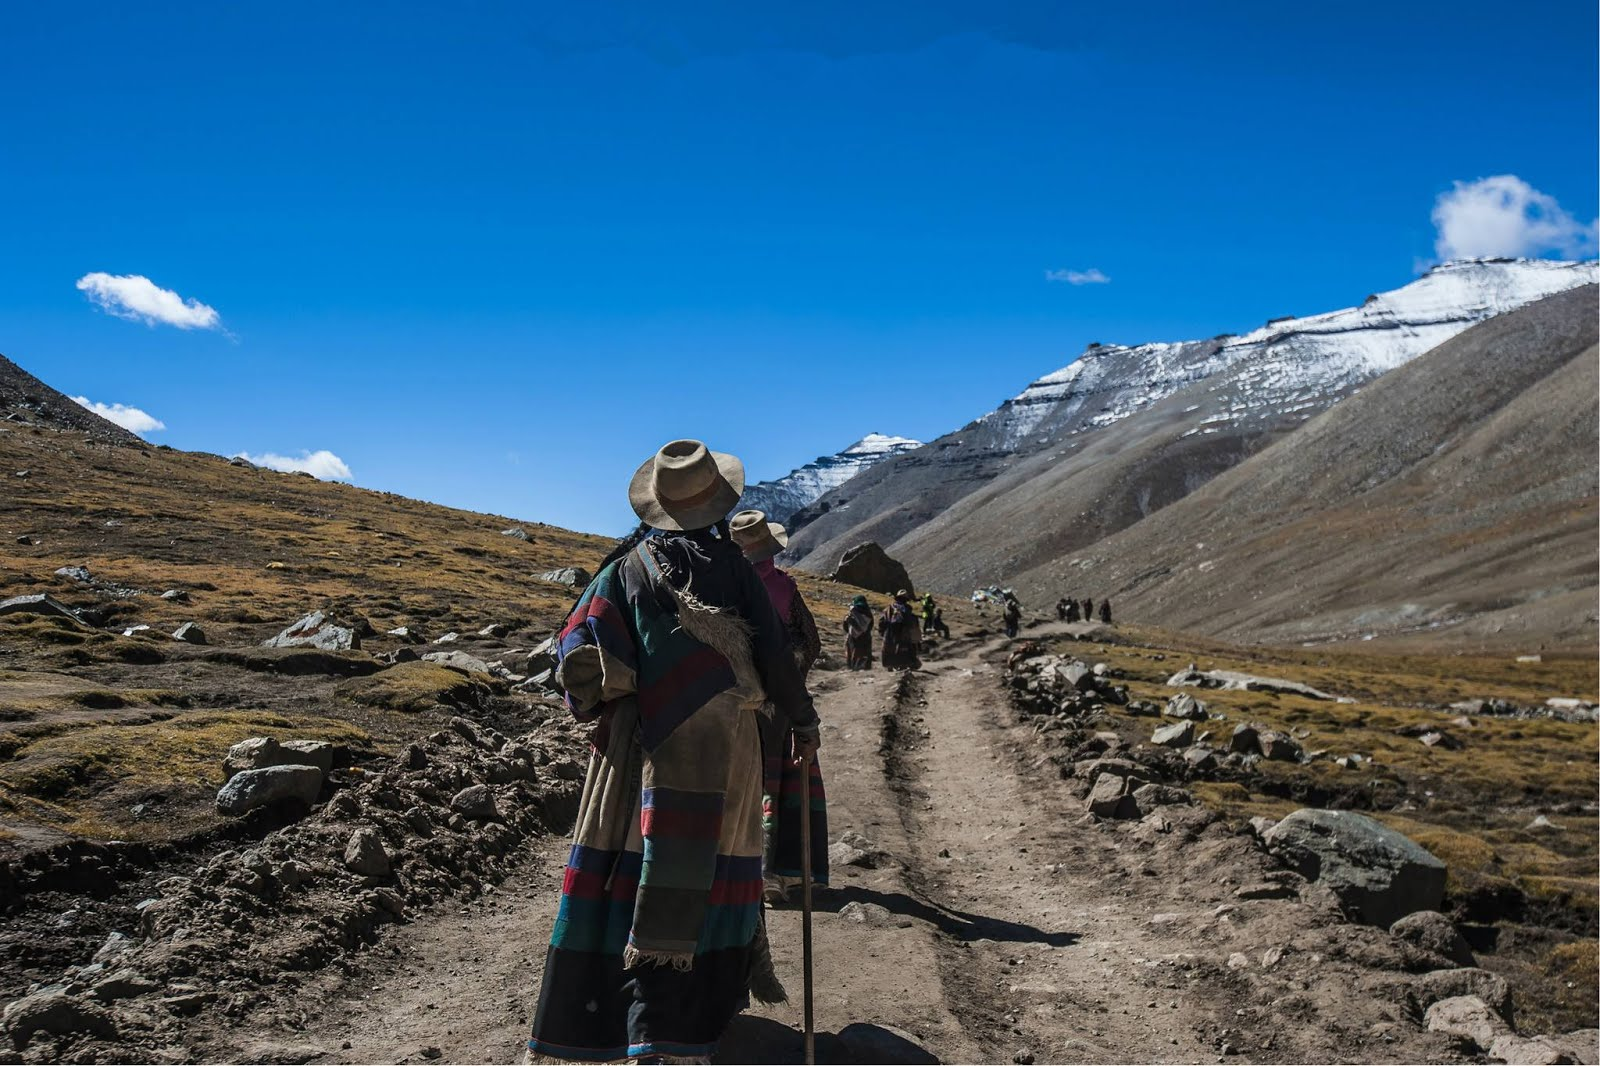 Trek from Darchen to Kailash.